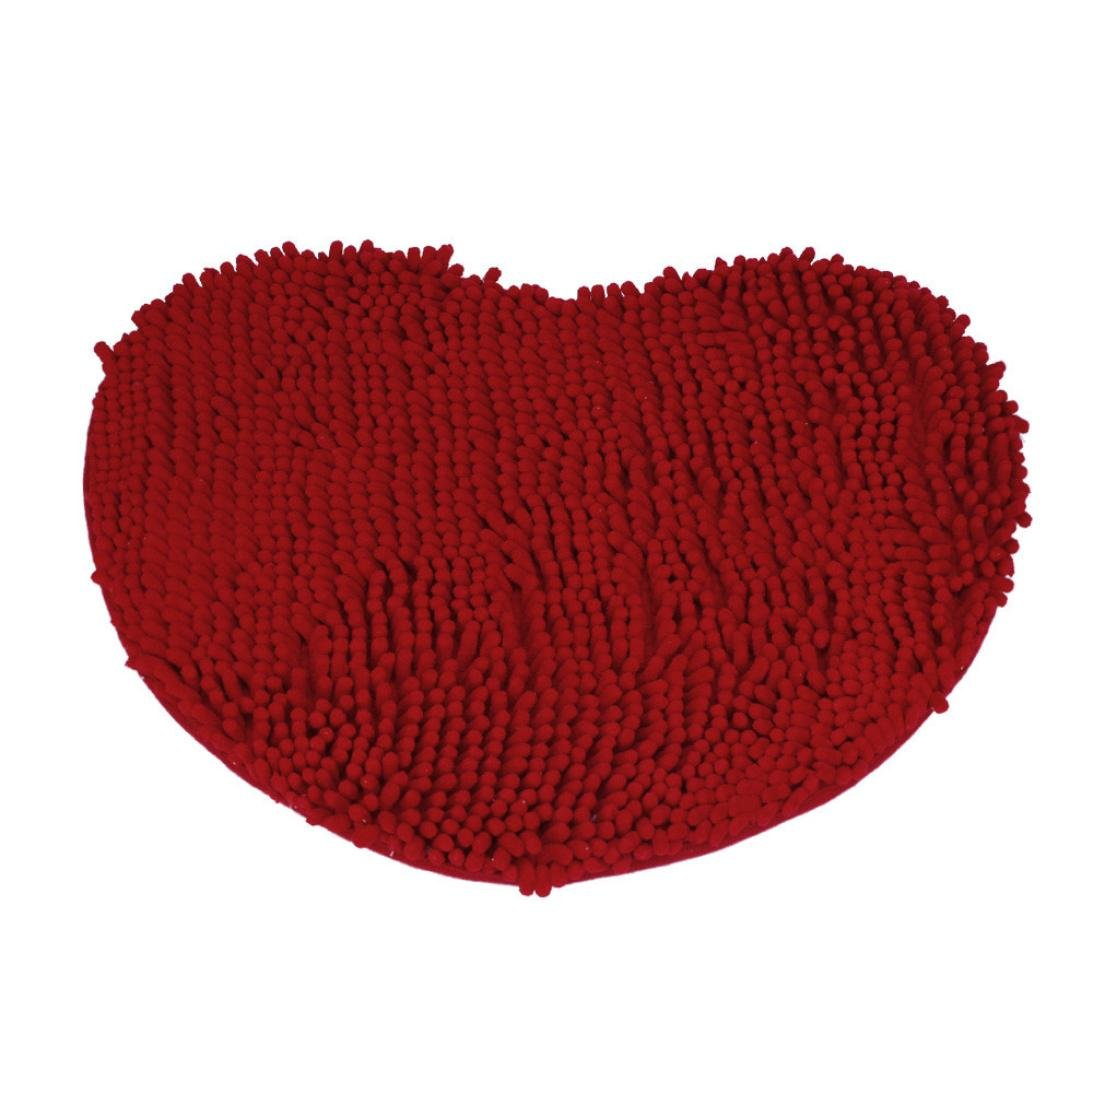 Jaminy Bedroom Door Mat Heart Shaped Carpet Fluffy Chenille Rug Cushion (Blue)